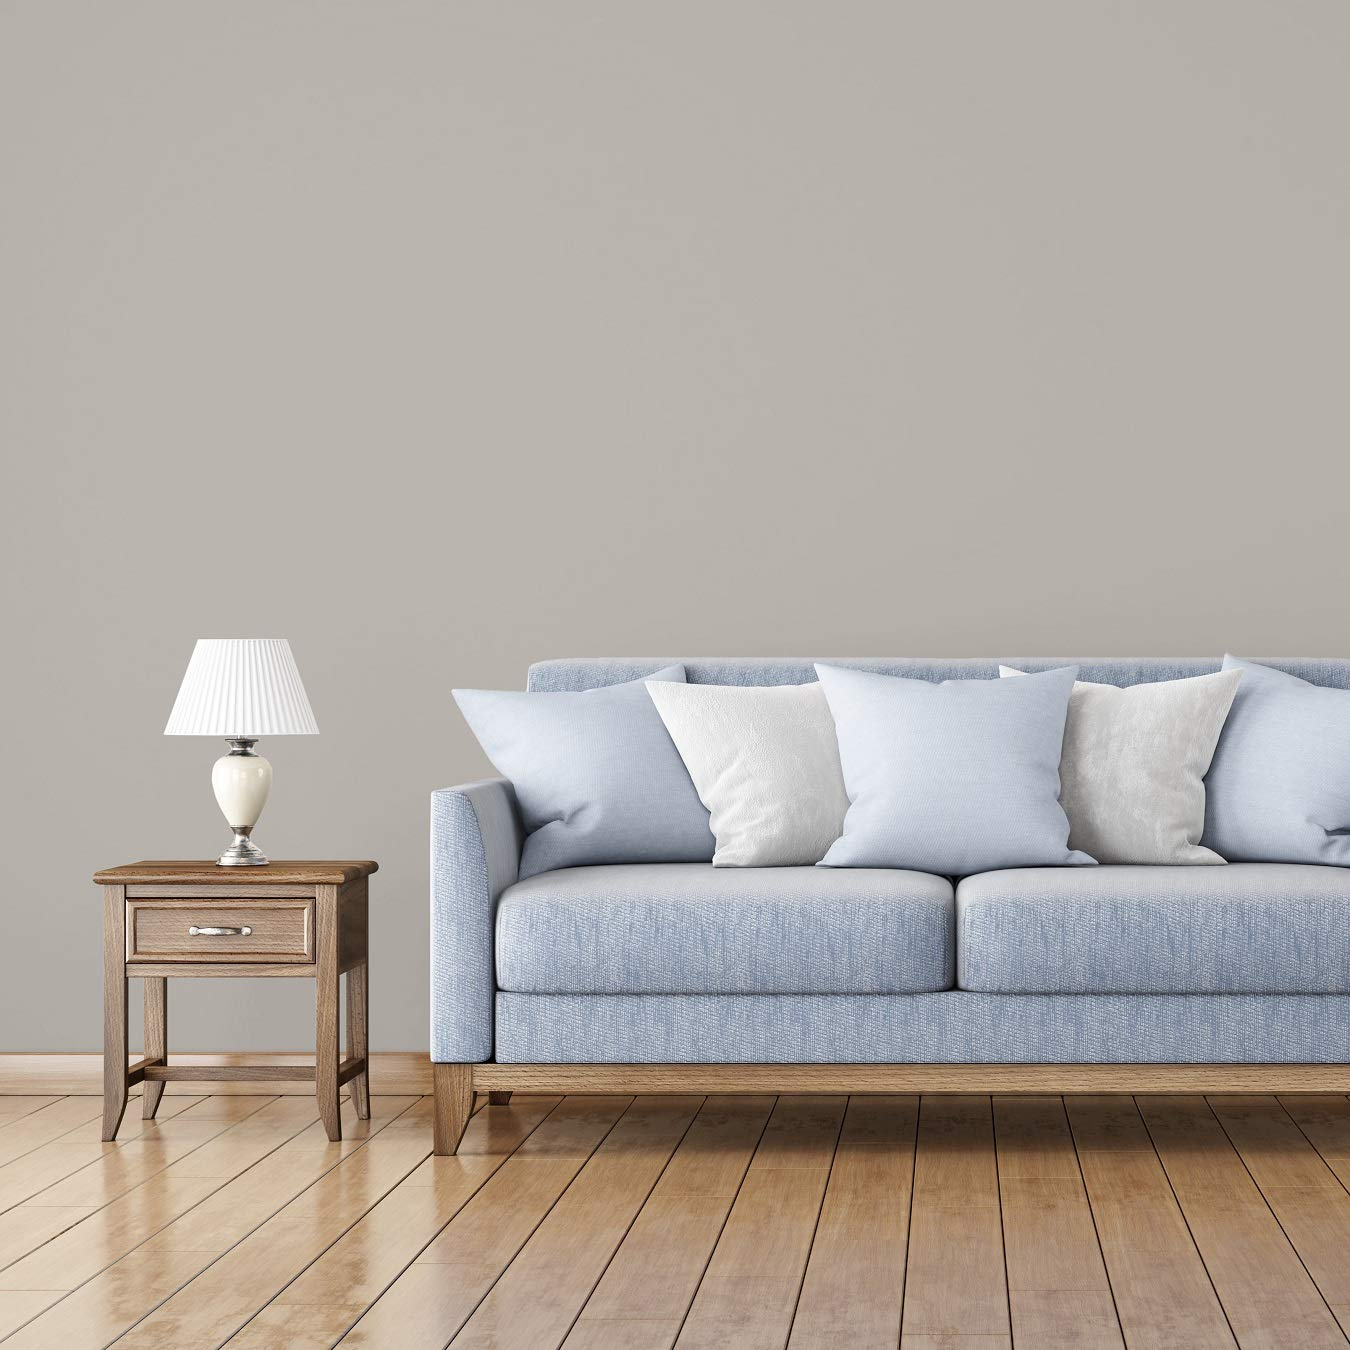 leather couch with pillows